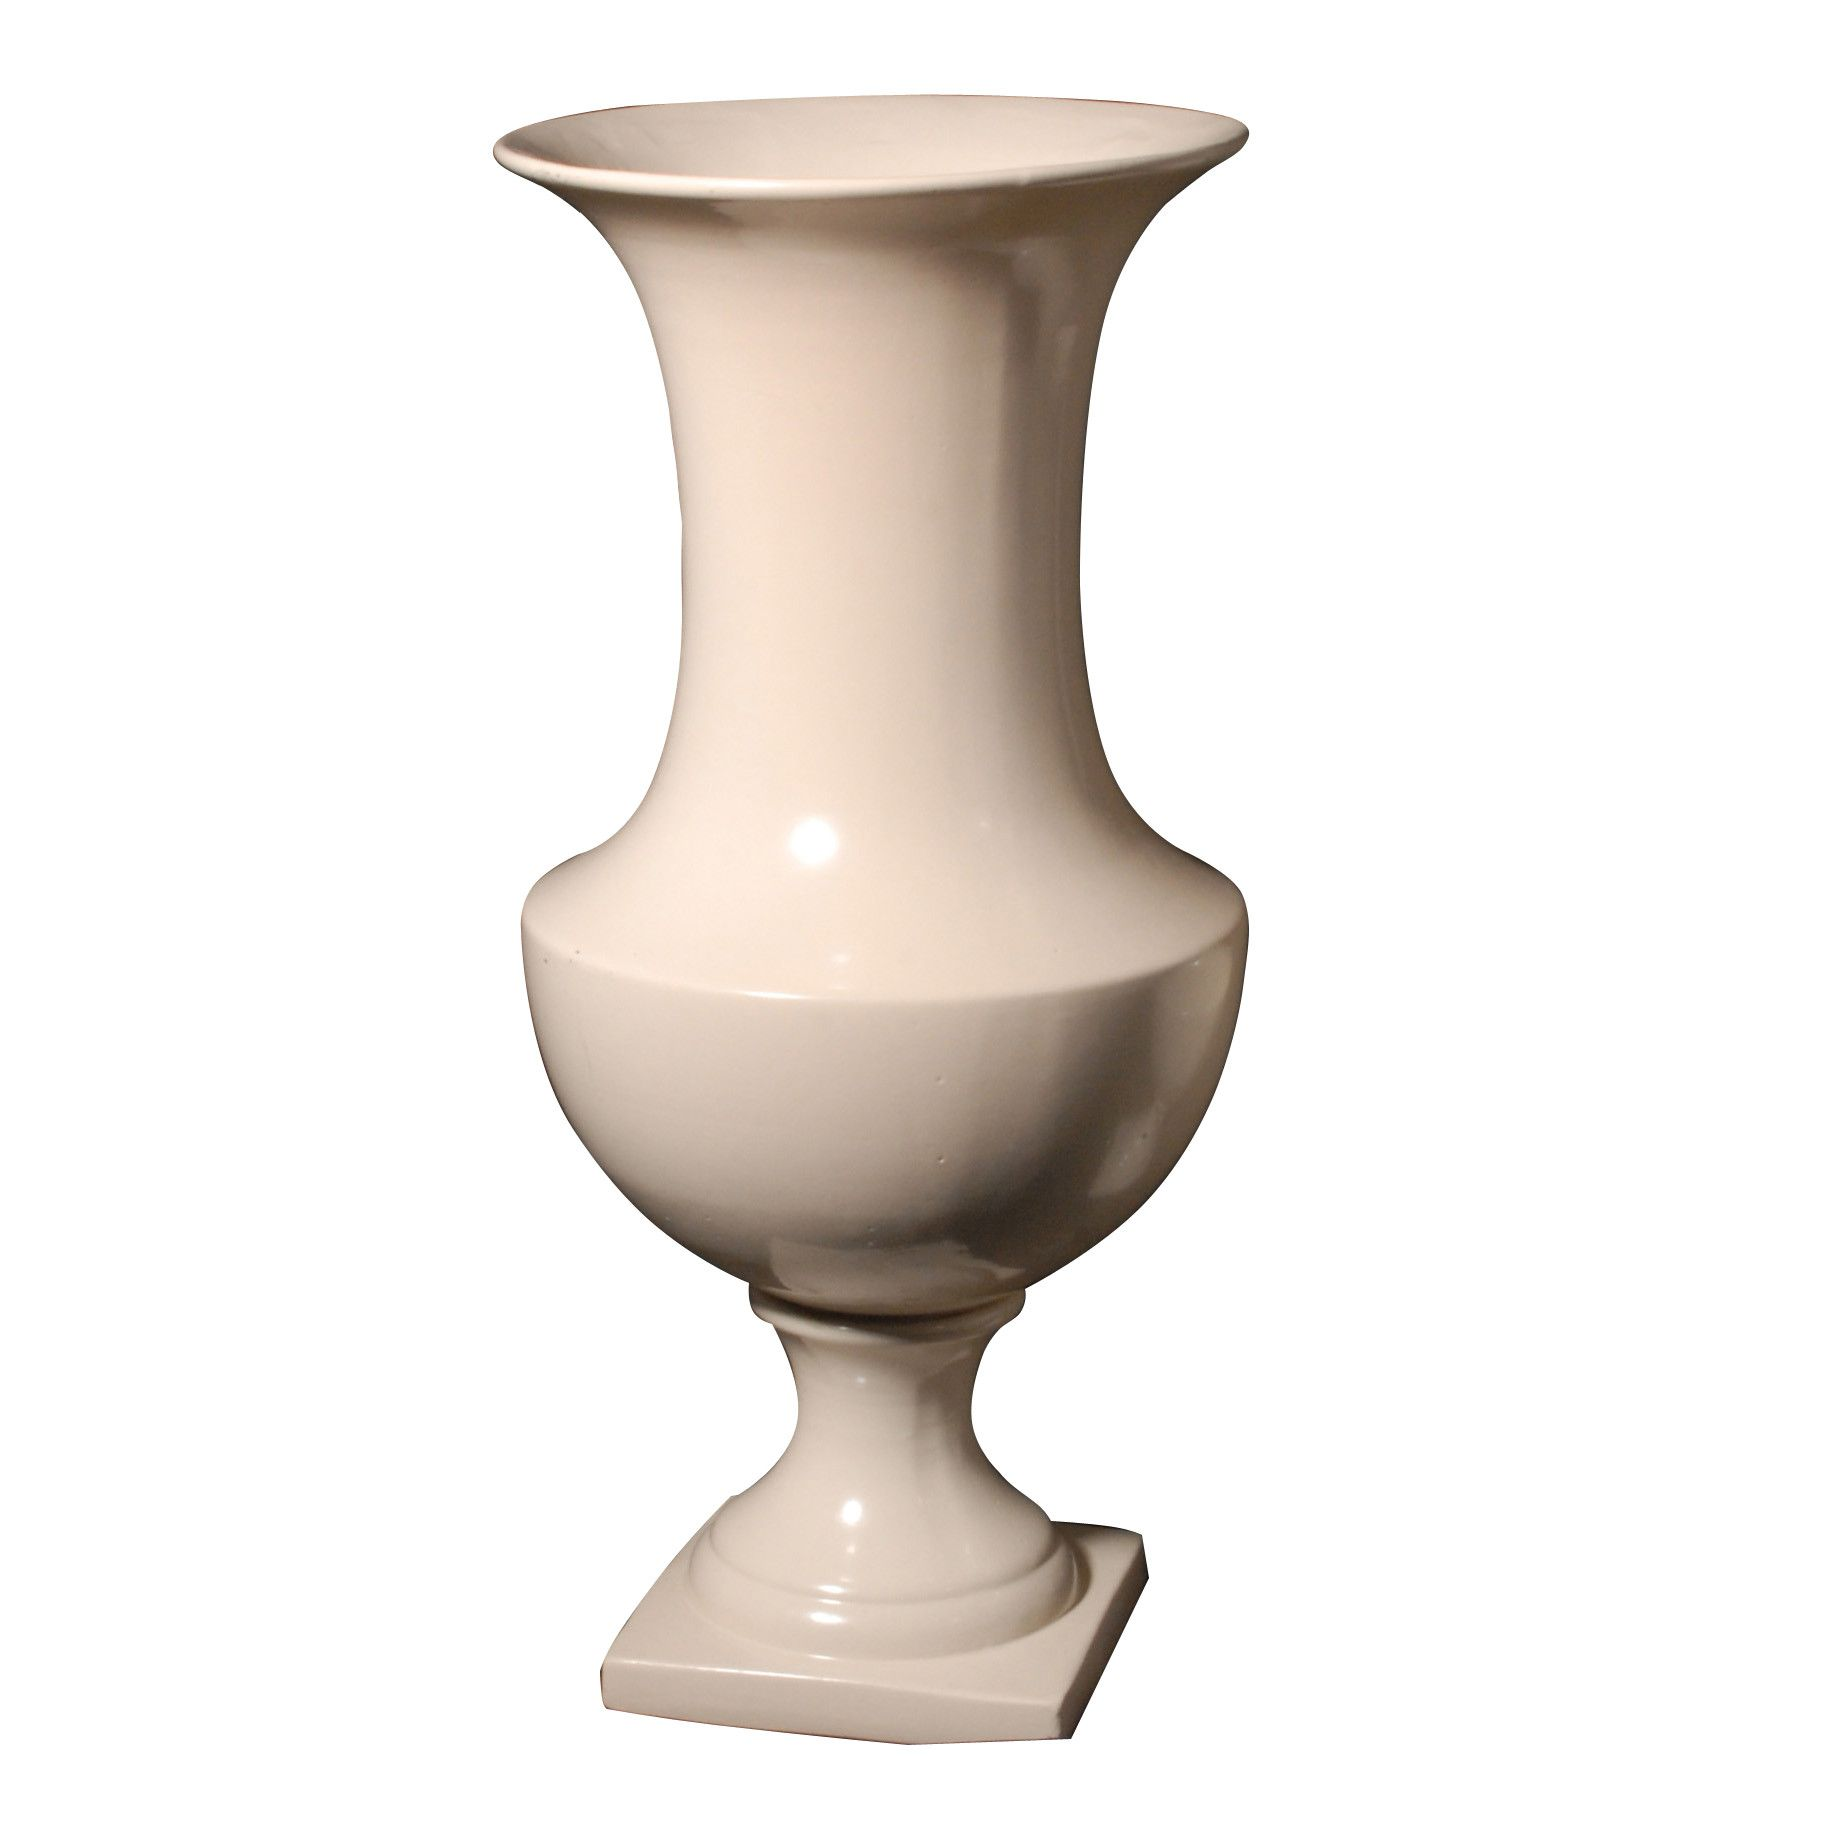 Decorative Urn New Donny Osmond Decorative Urn & Reviews  Wayfair  Urn  Pinterest Decorating Inspiration